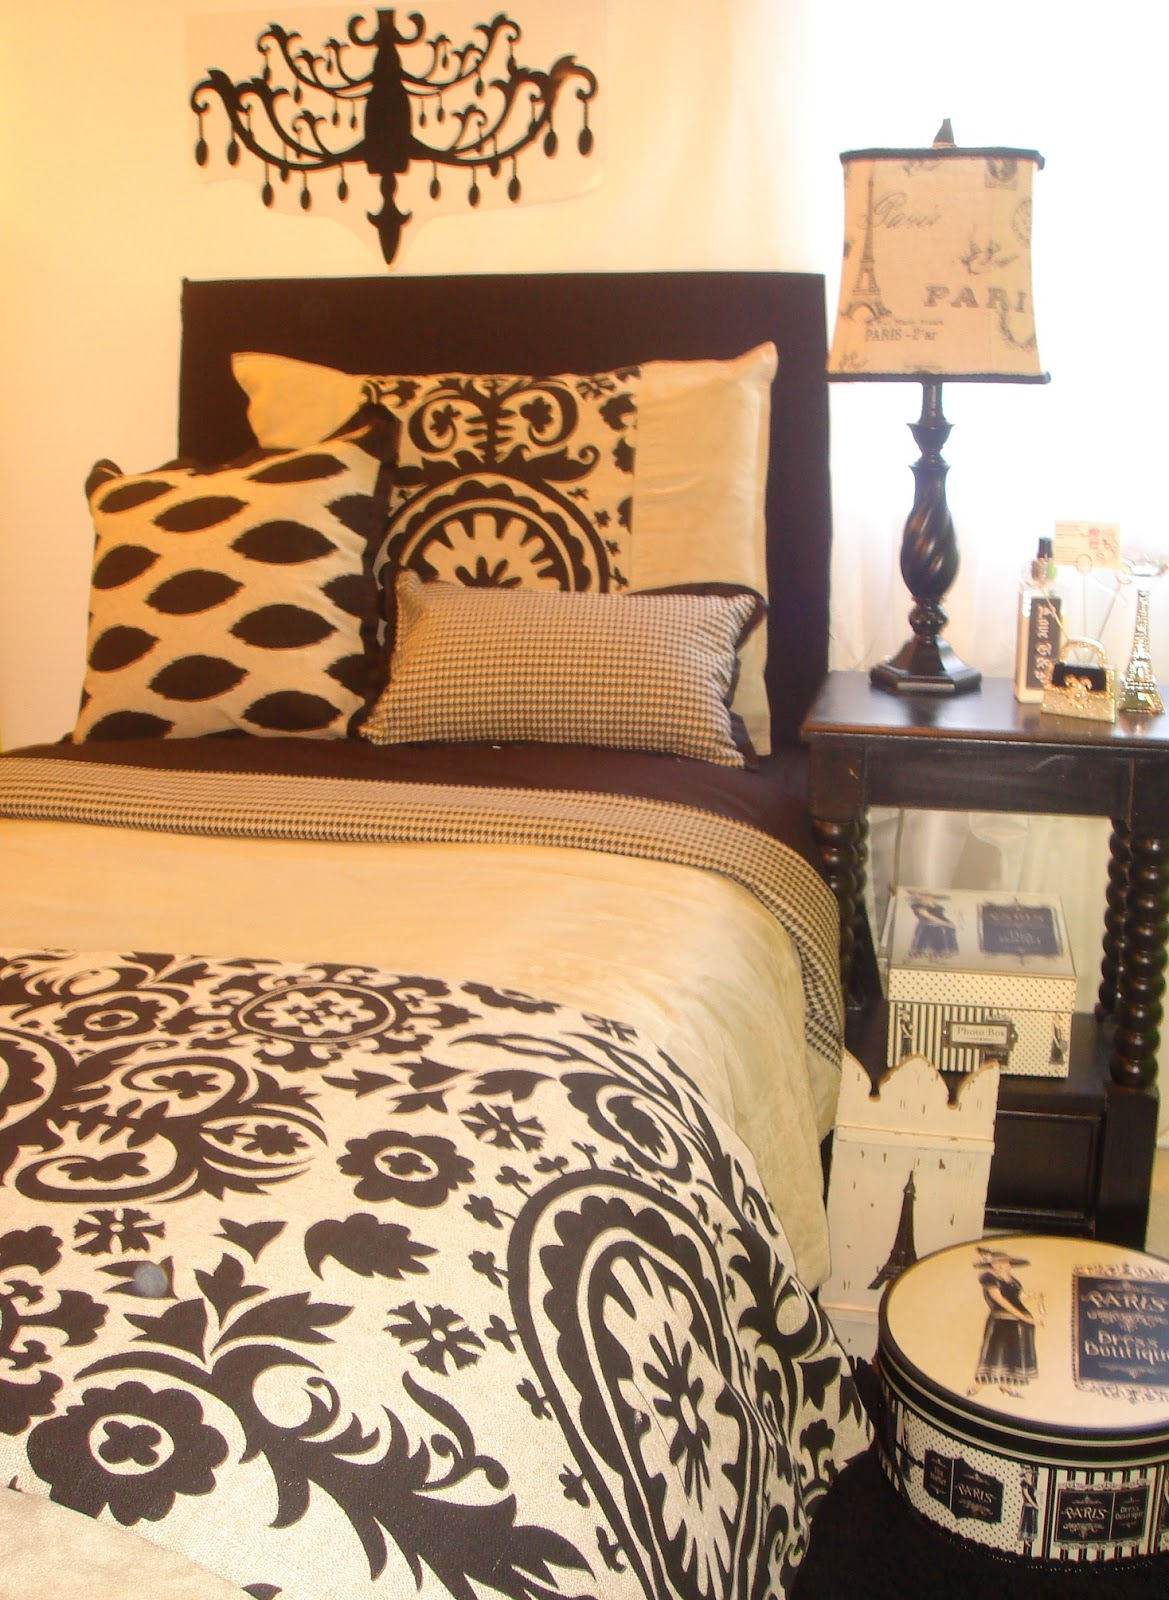 Leopard Print Bedroom Decor - Interior Designs Room